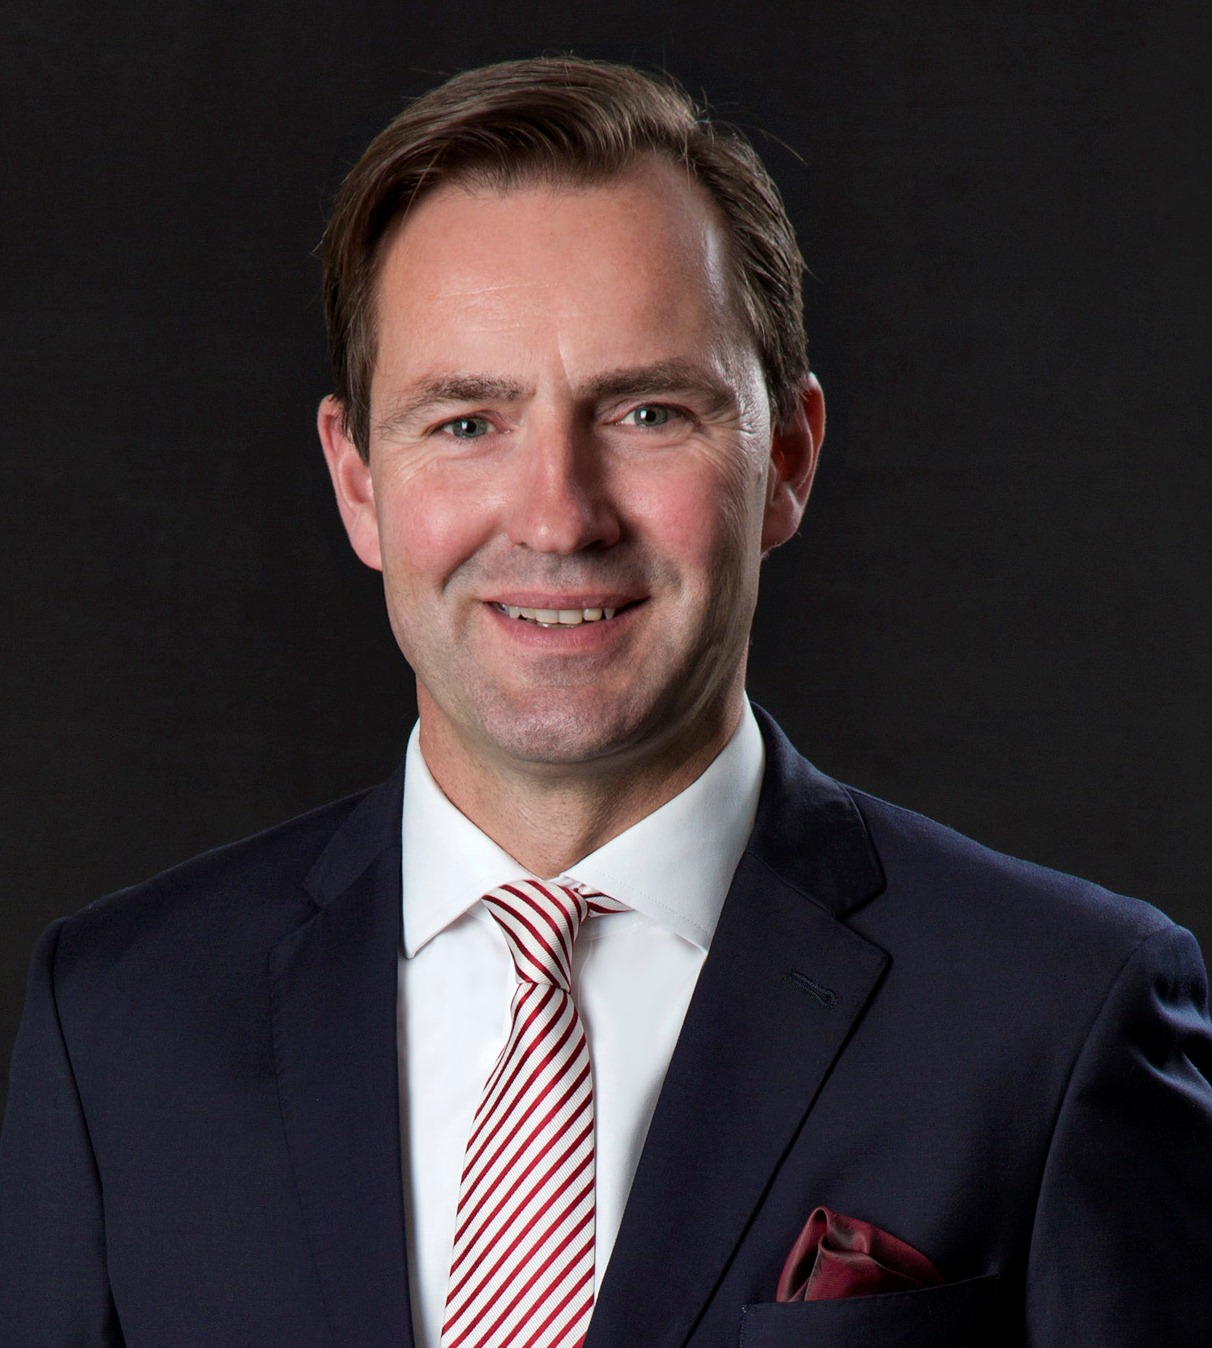 New Chairman of the Board appointed at SKODA AUTO - Image 1